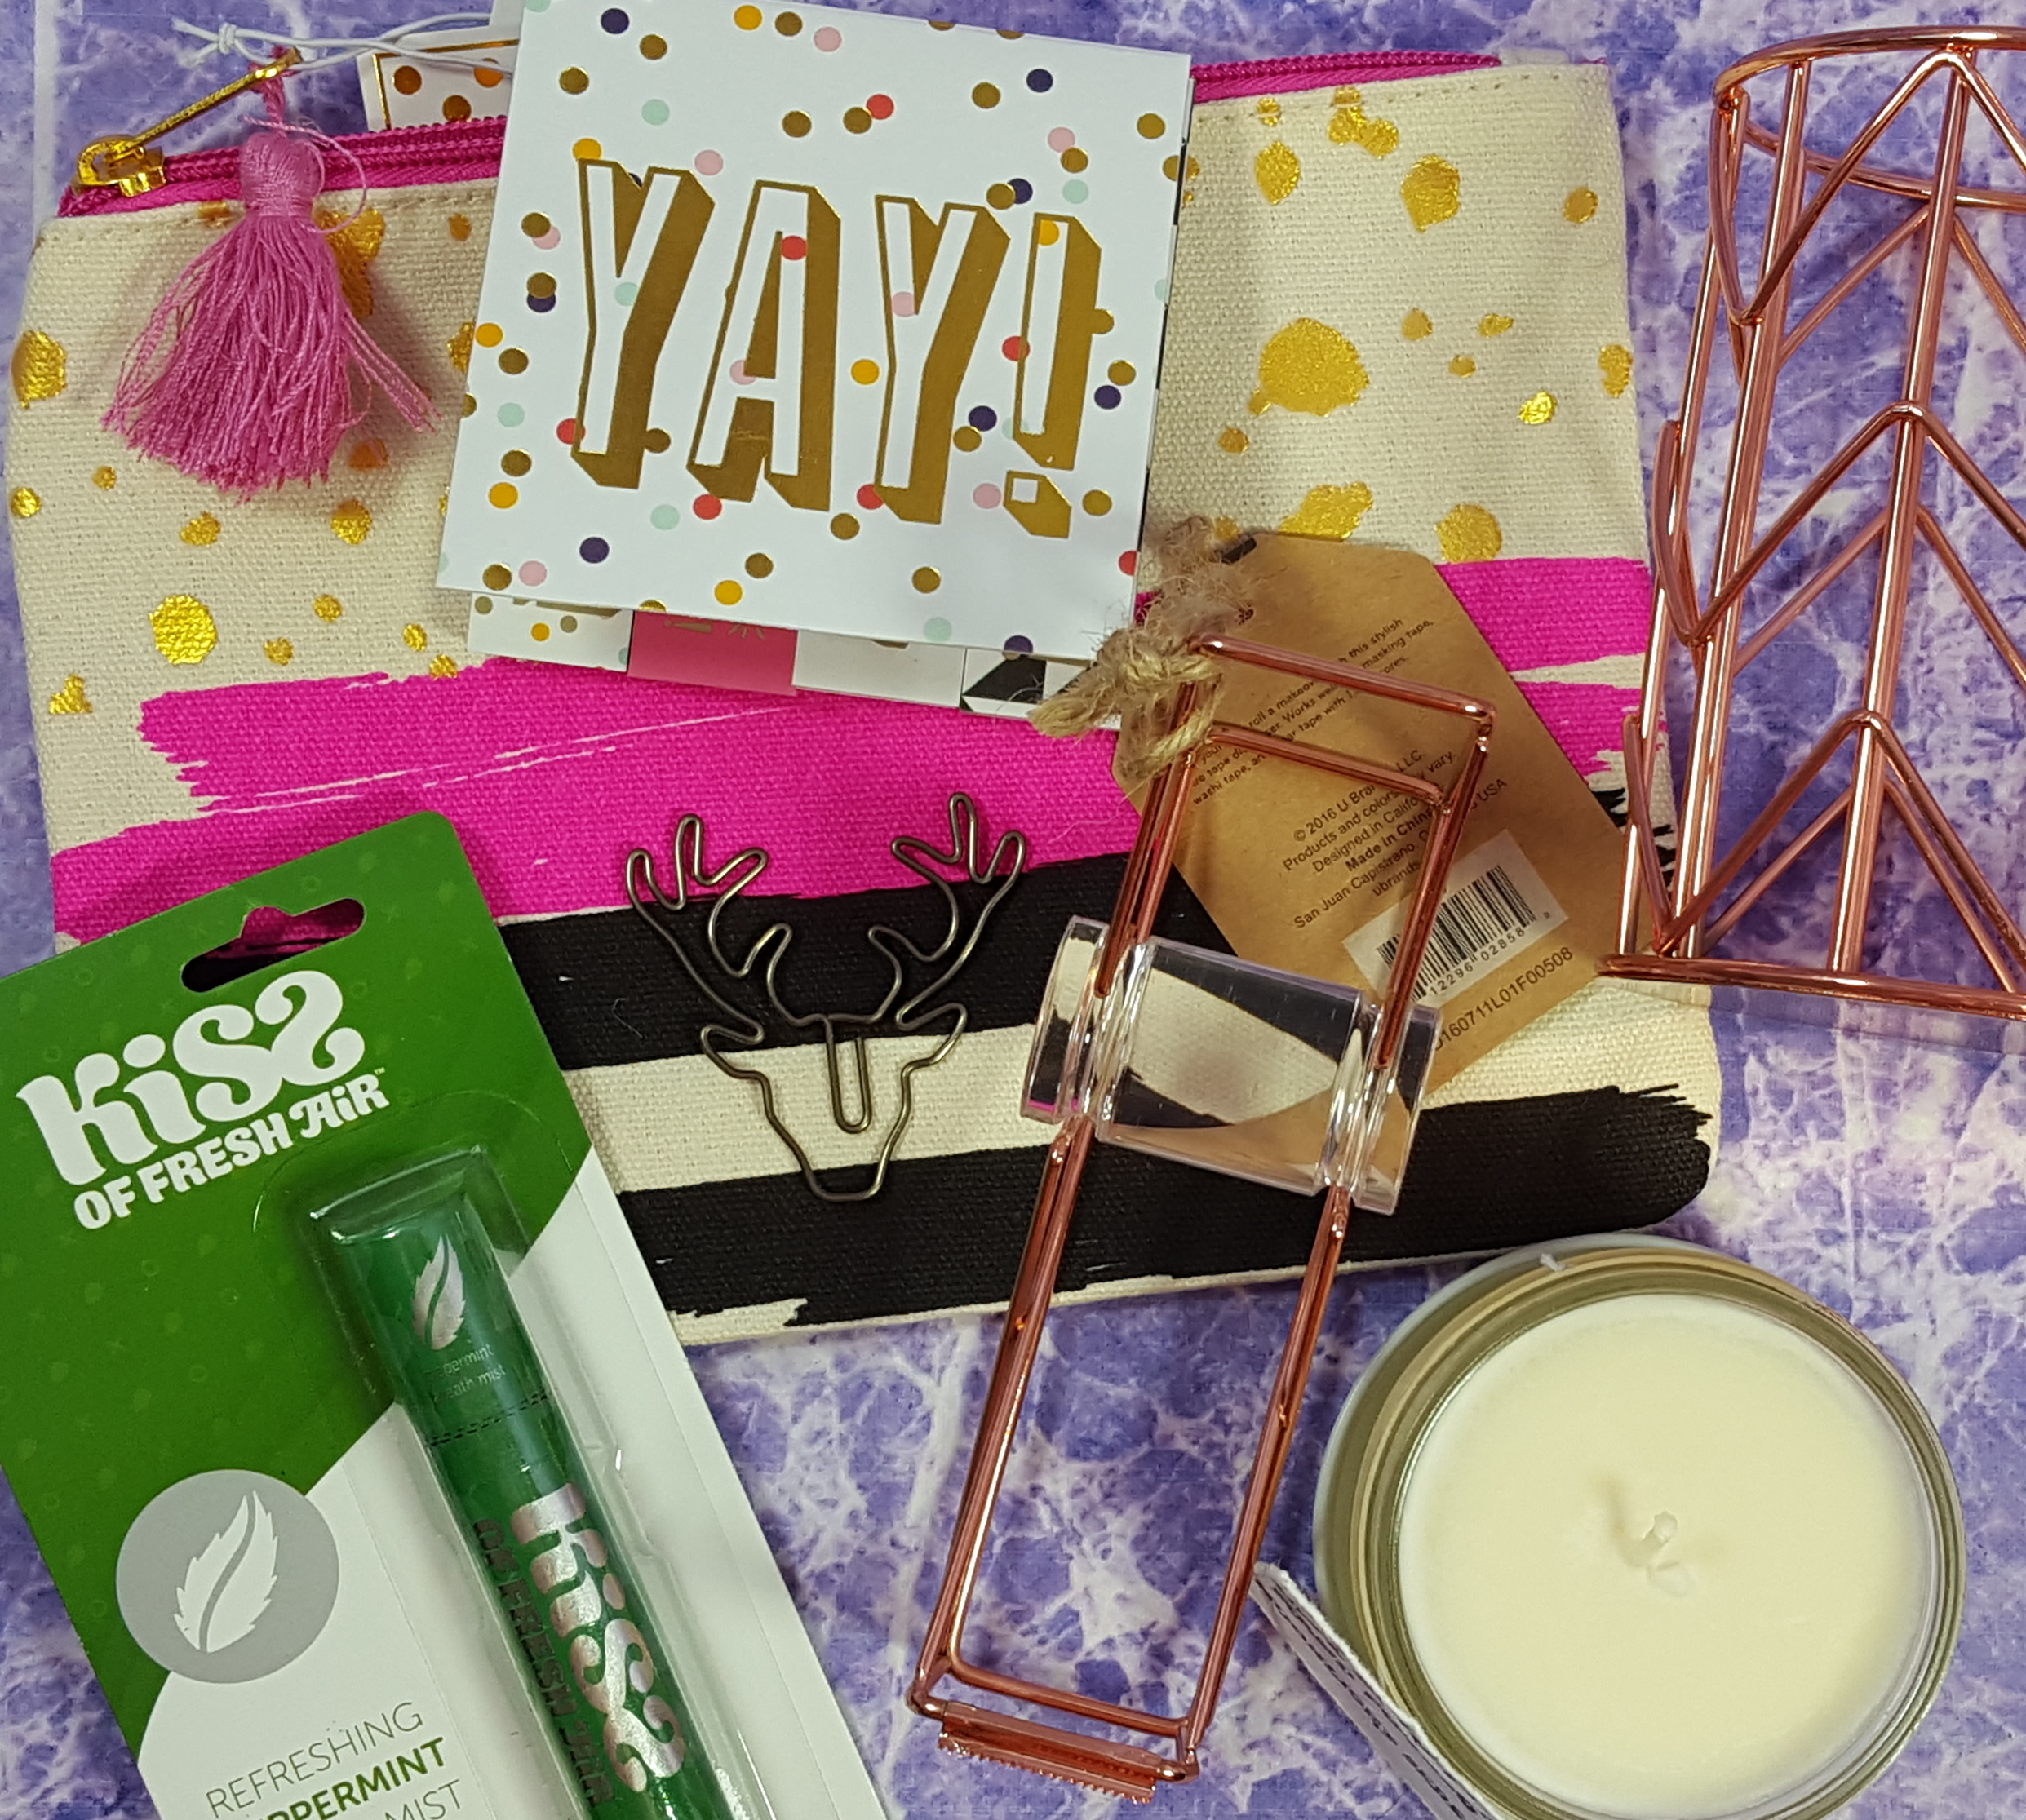 Trendy Memo Box Winter 2016 Subscription Box Review + Coupon!